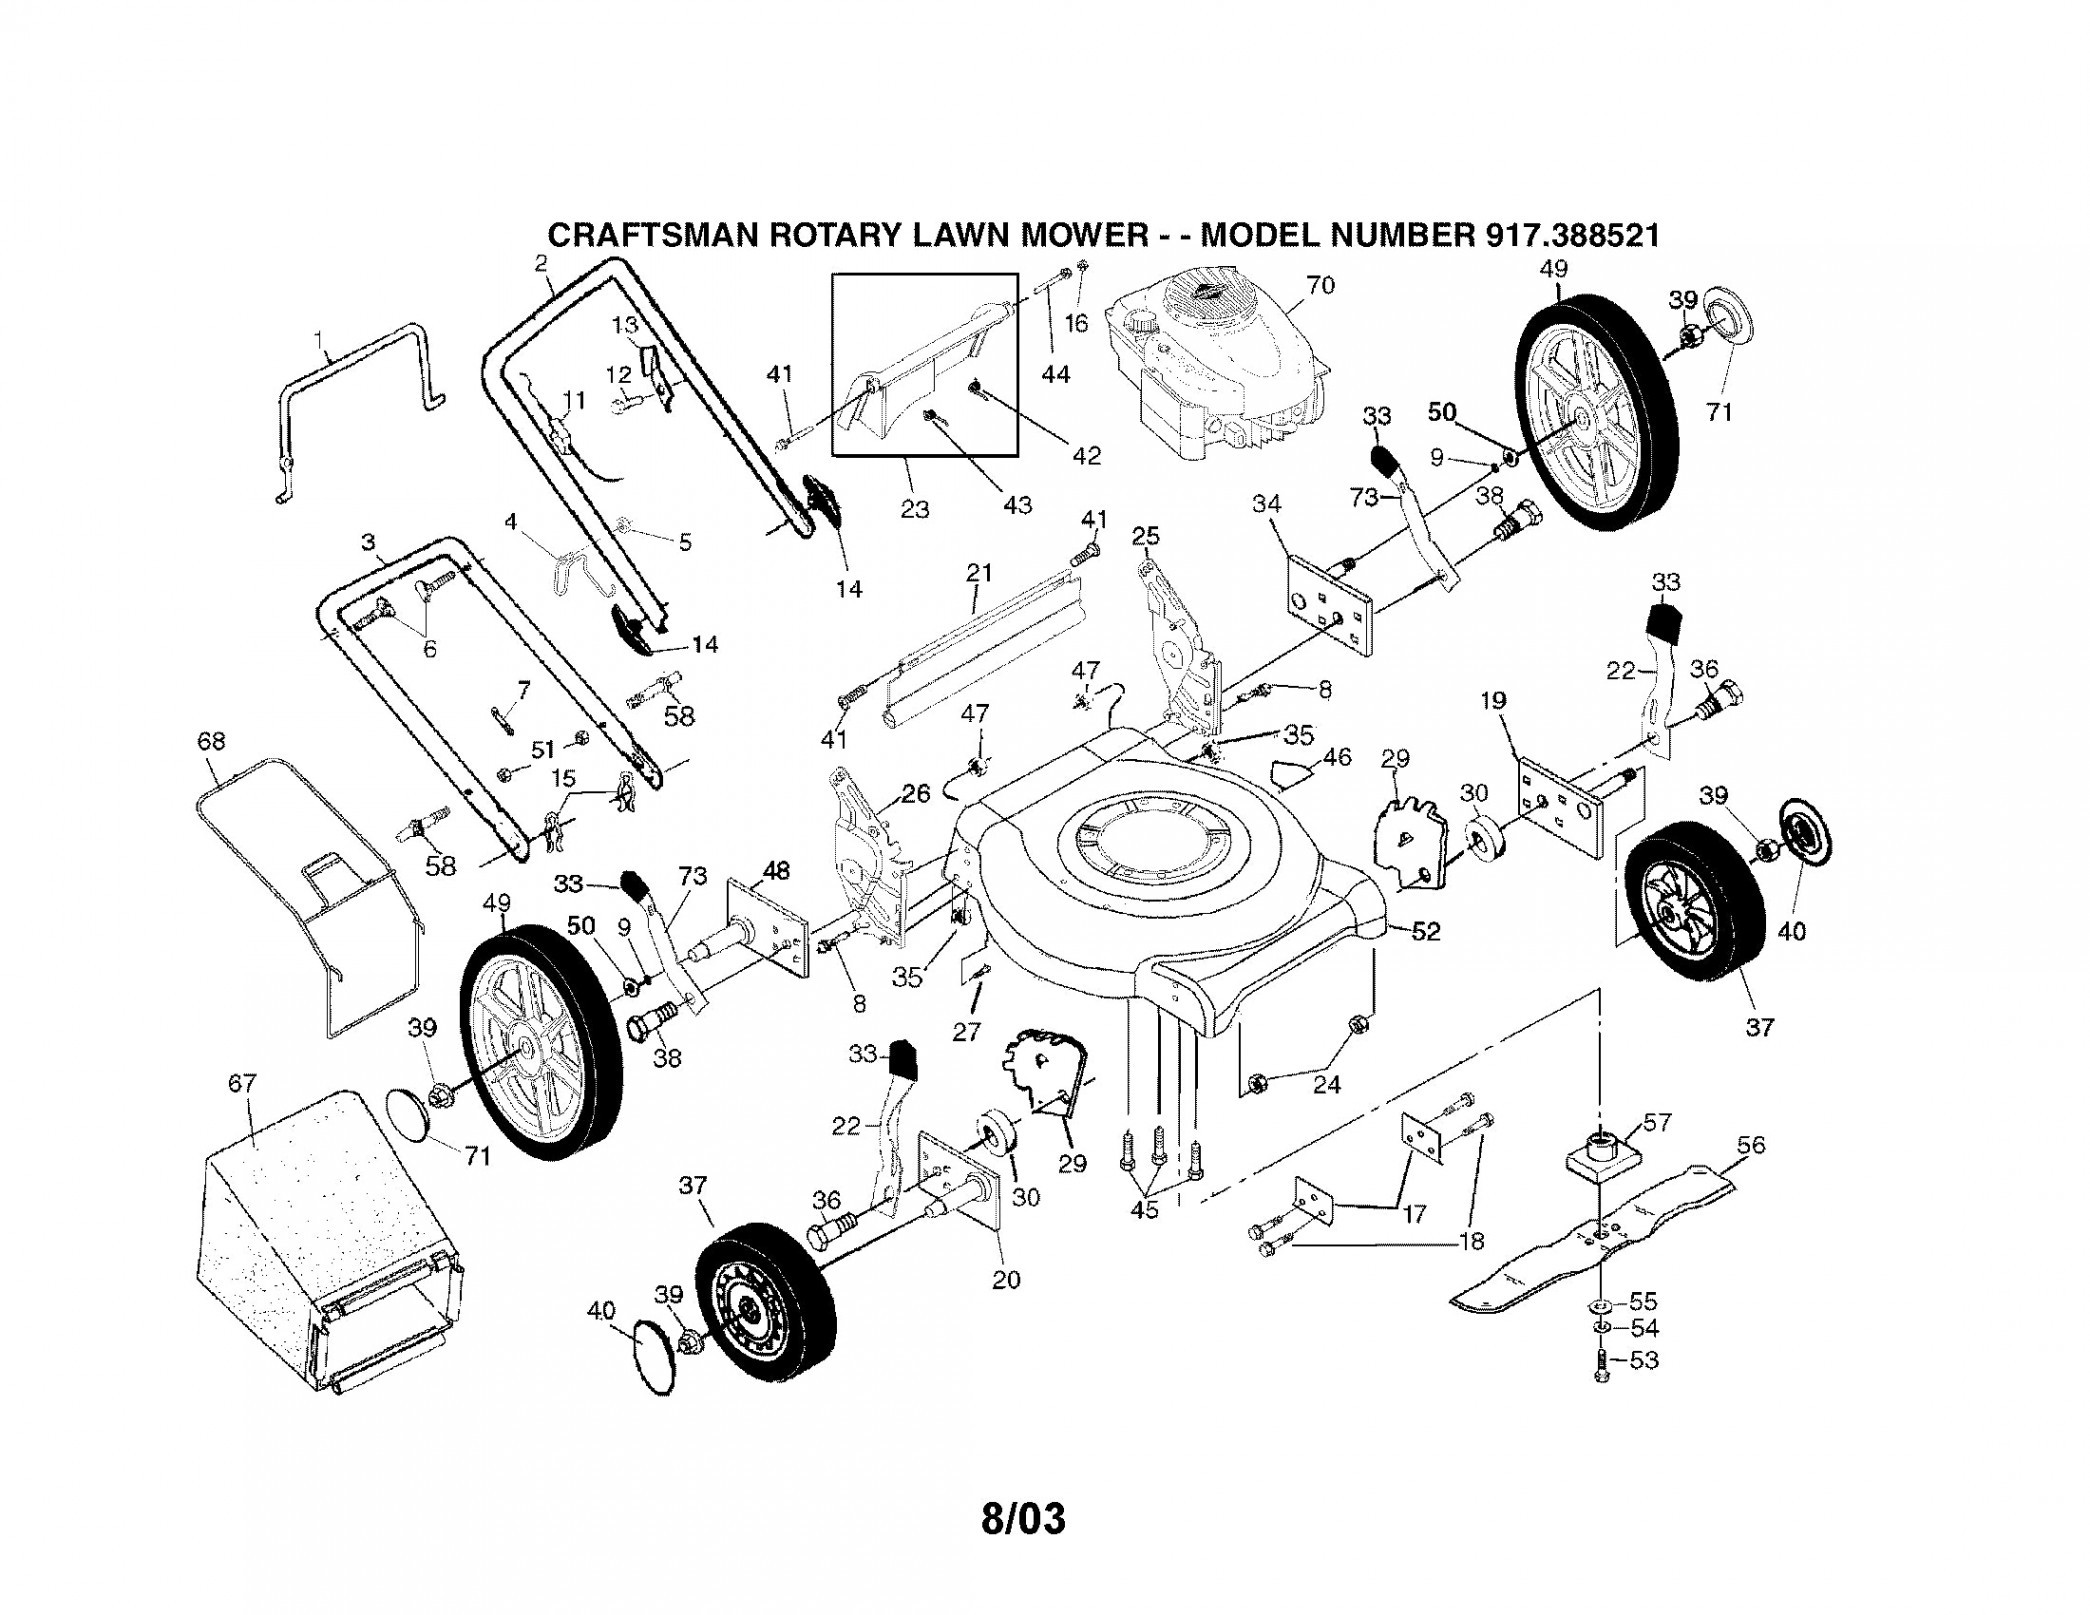 Briggs and Stratton Lawn Mower Parts Diagram Briggs and Stratton Engine Troubleshooting Diagram – Craftsman Model Of Briggs and Stratton Lawn Mower Parts Diagram Briggs and Stratton Recoil Starter assembly Diagram – Awesome